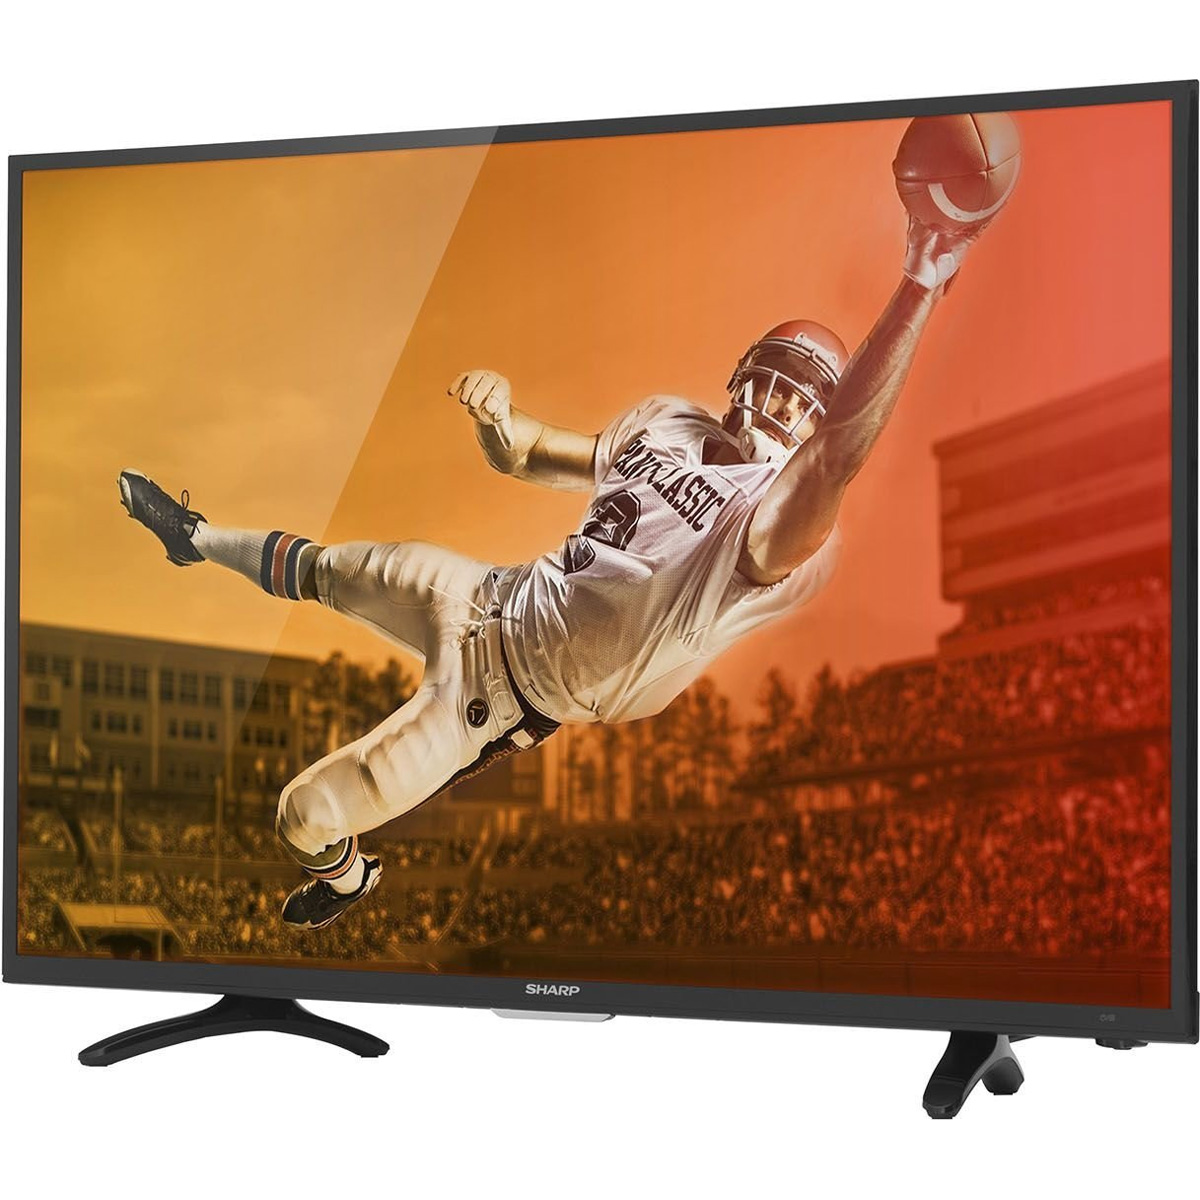 "Hisense Sharp 50"" Class FHD (1080p) LED TV (LC-50N3100U)"